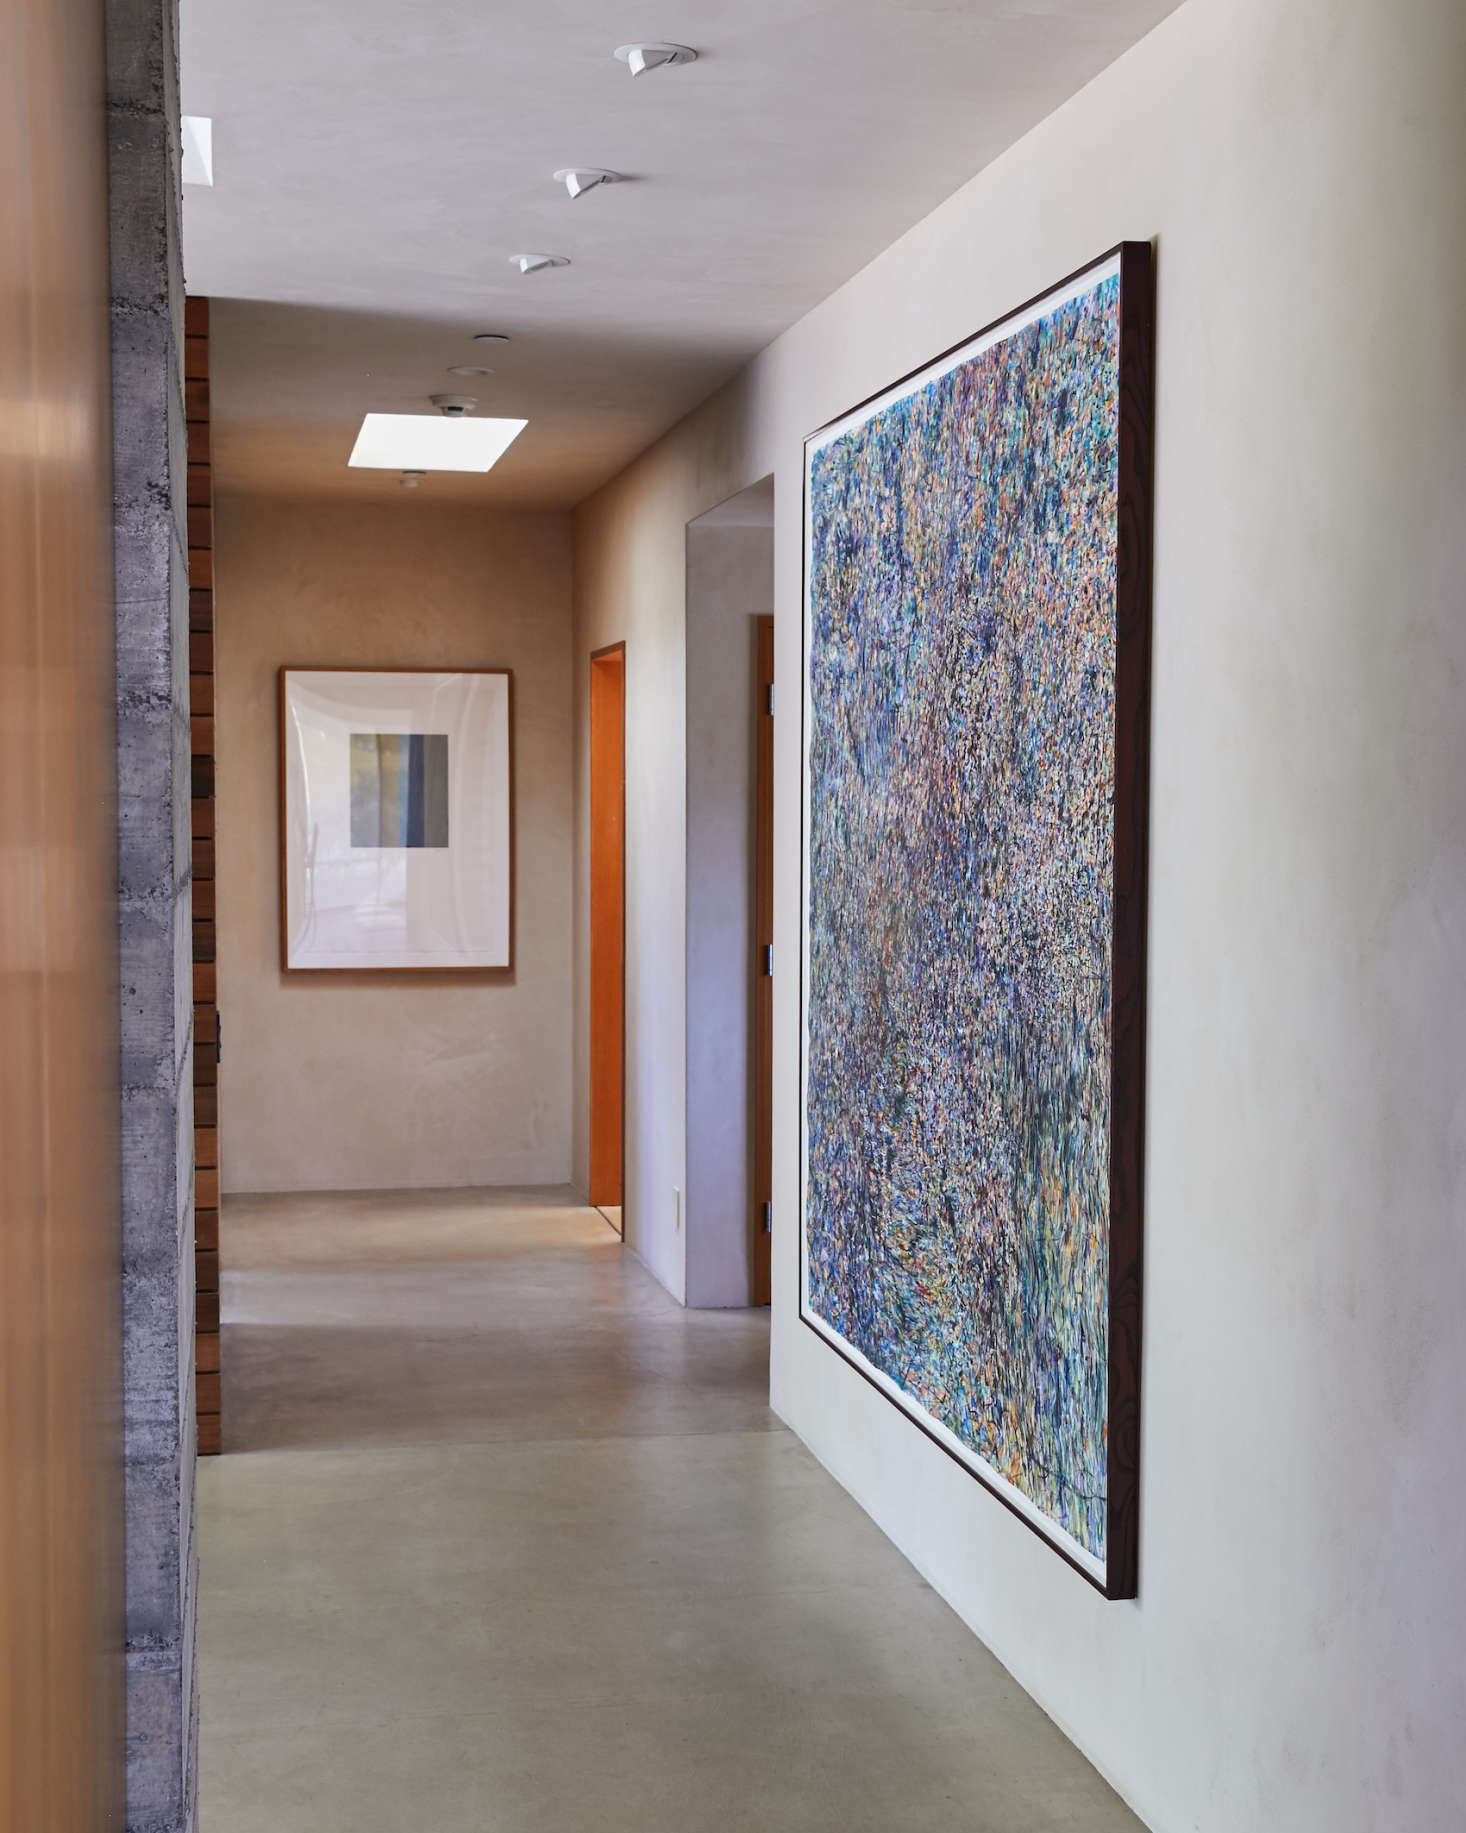 A dramatic painting in the foyer anchors the entrance. It&#8